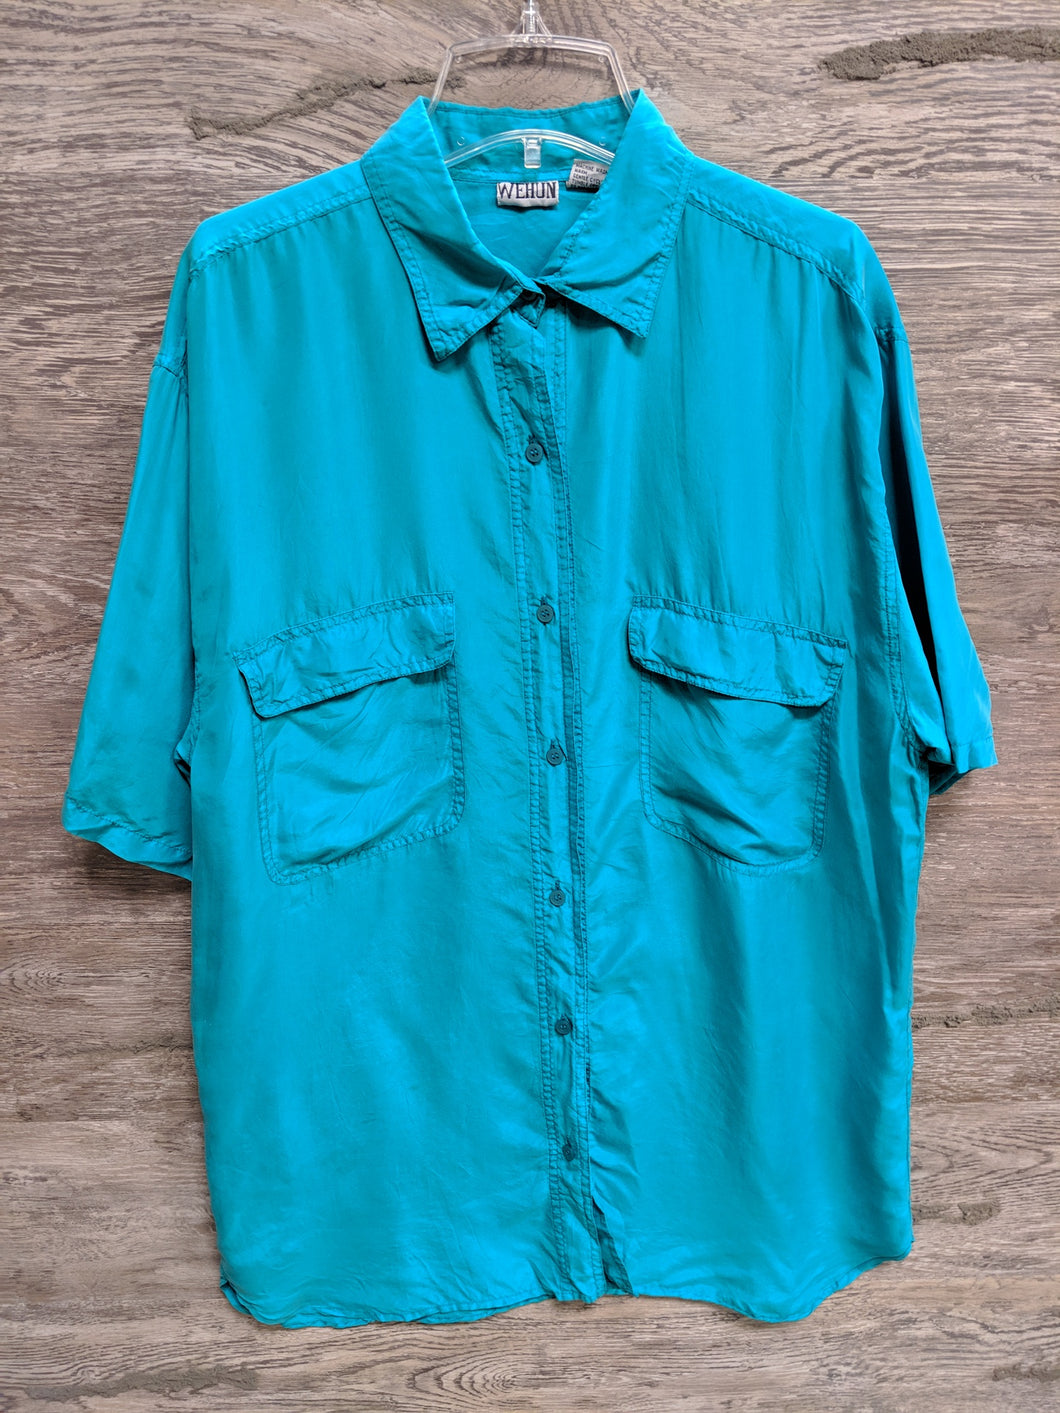 Wehun Teal Silk Button Up - Closet Freekz